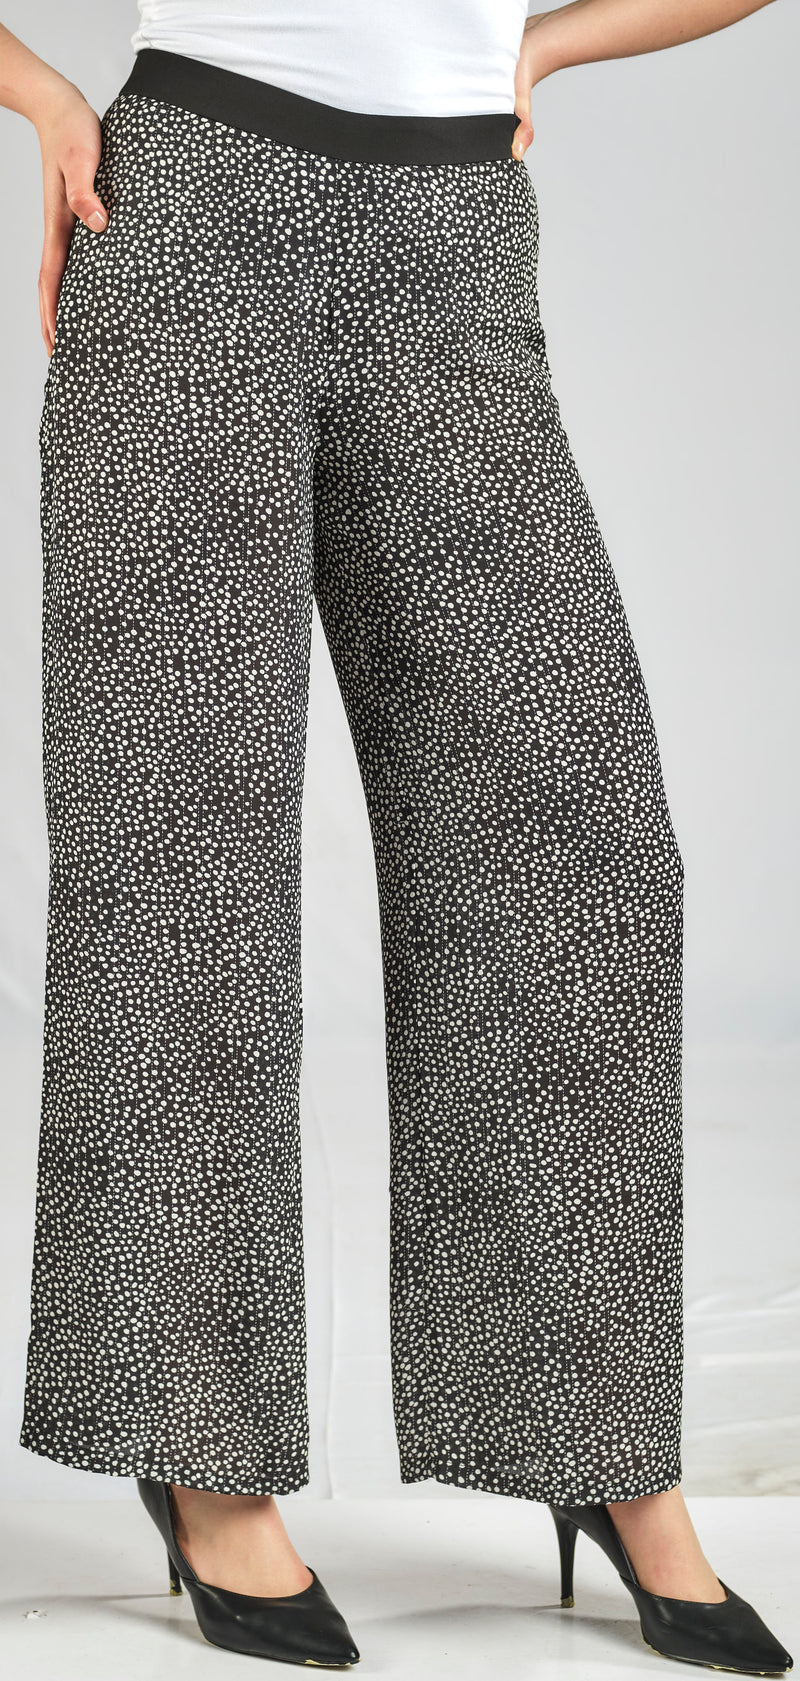 PRINTED POLKA DOT CREPE CHIFFON PANTS WITH ELASTIC WAIST FOR EXTRA COMFORT